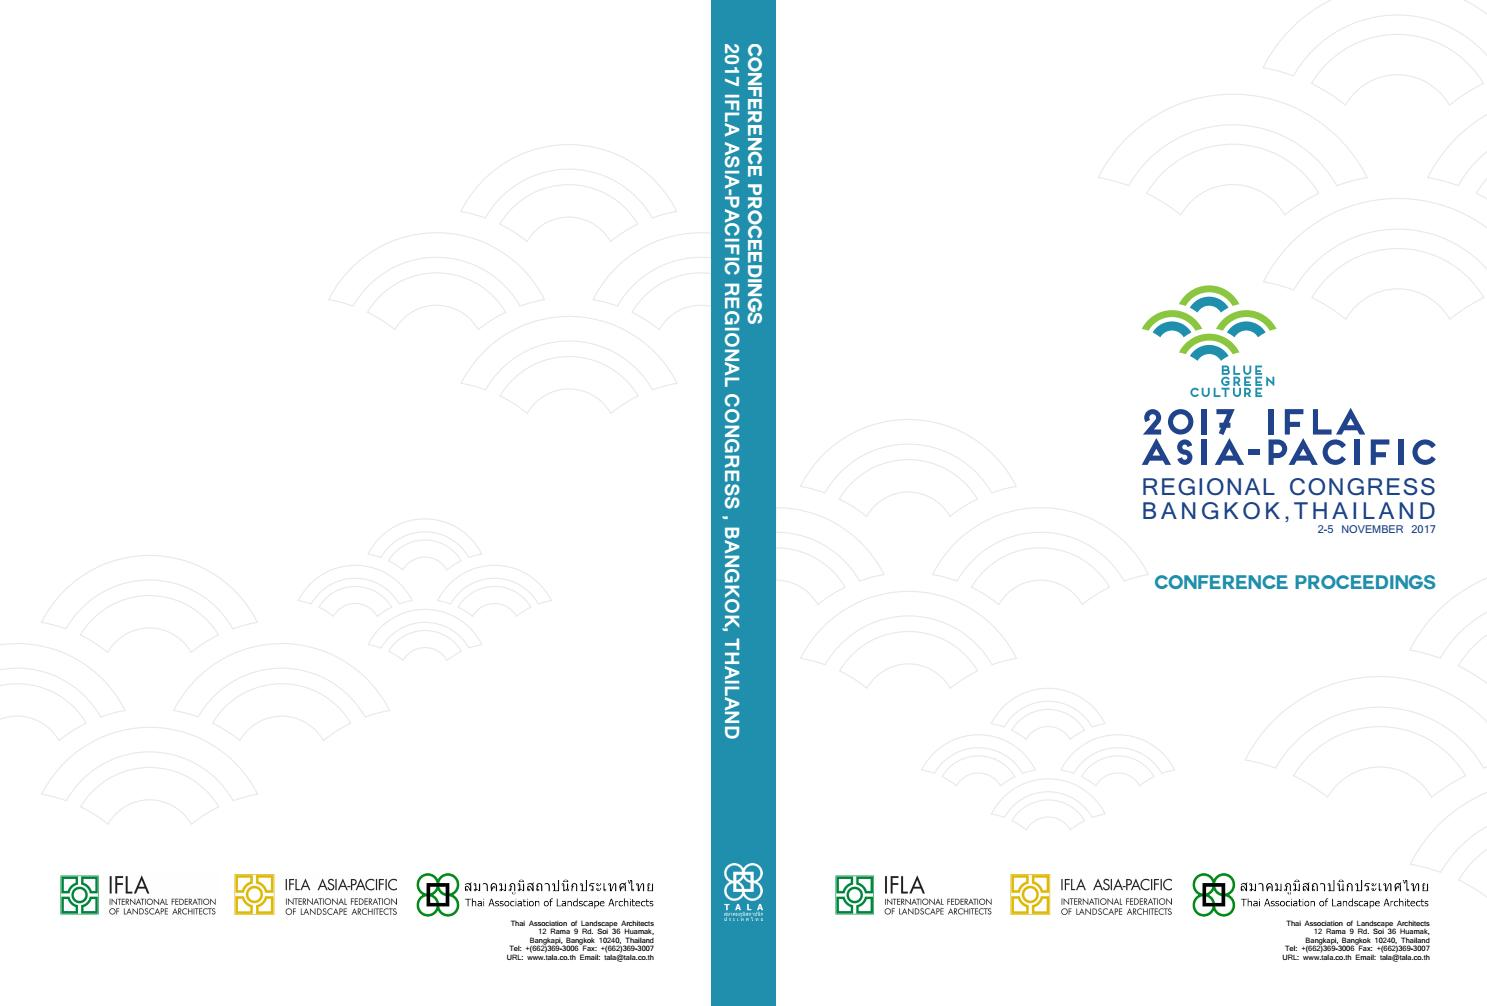 ifla apr proceeding book by charaspim boonyanant issuu